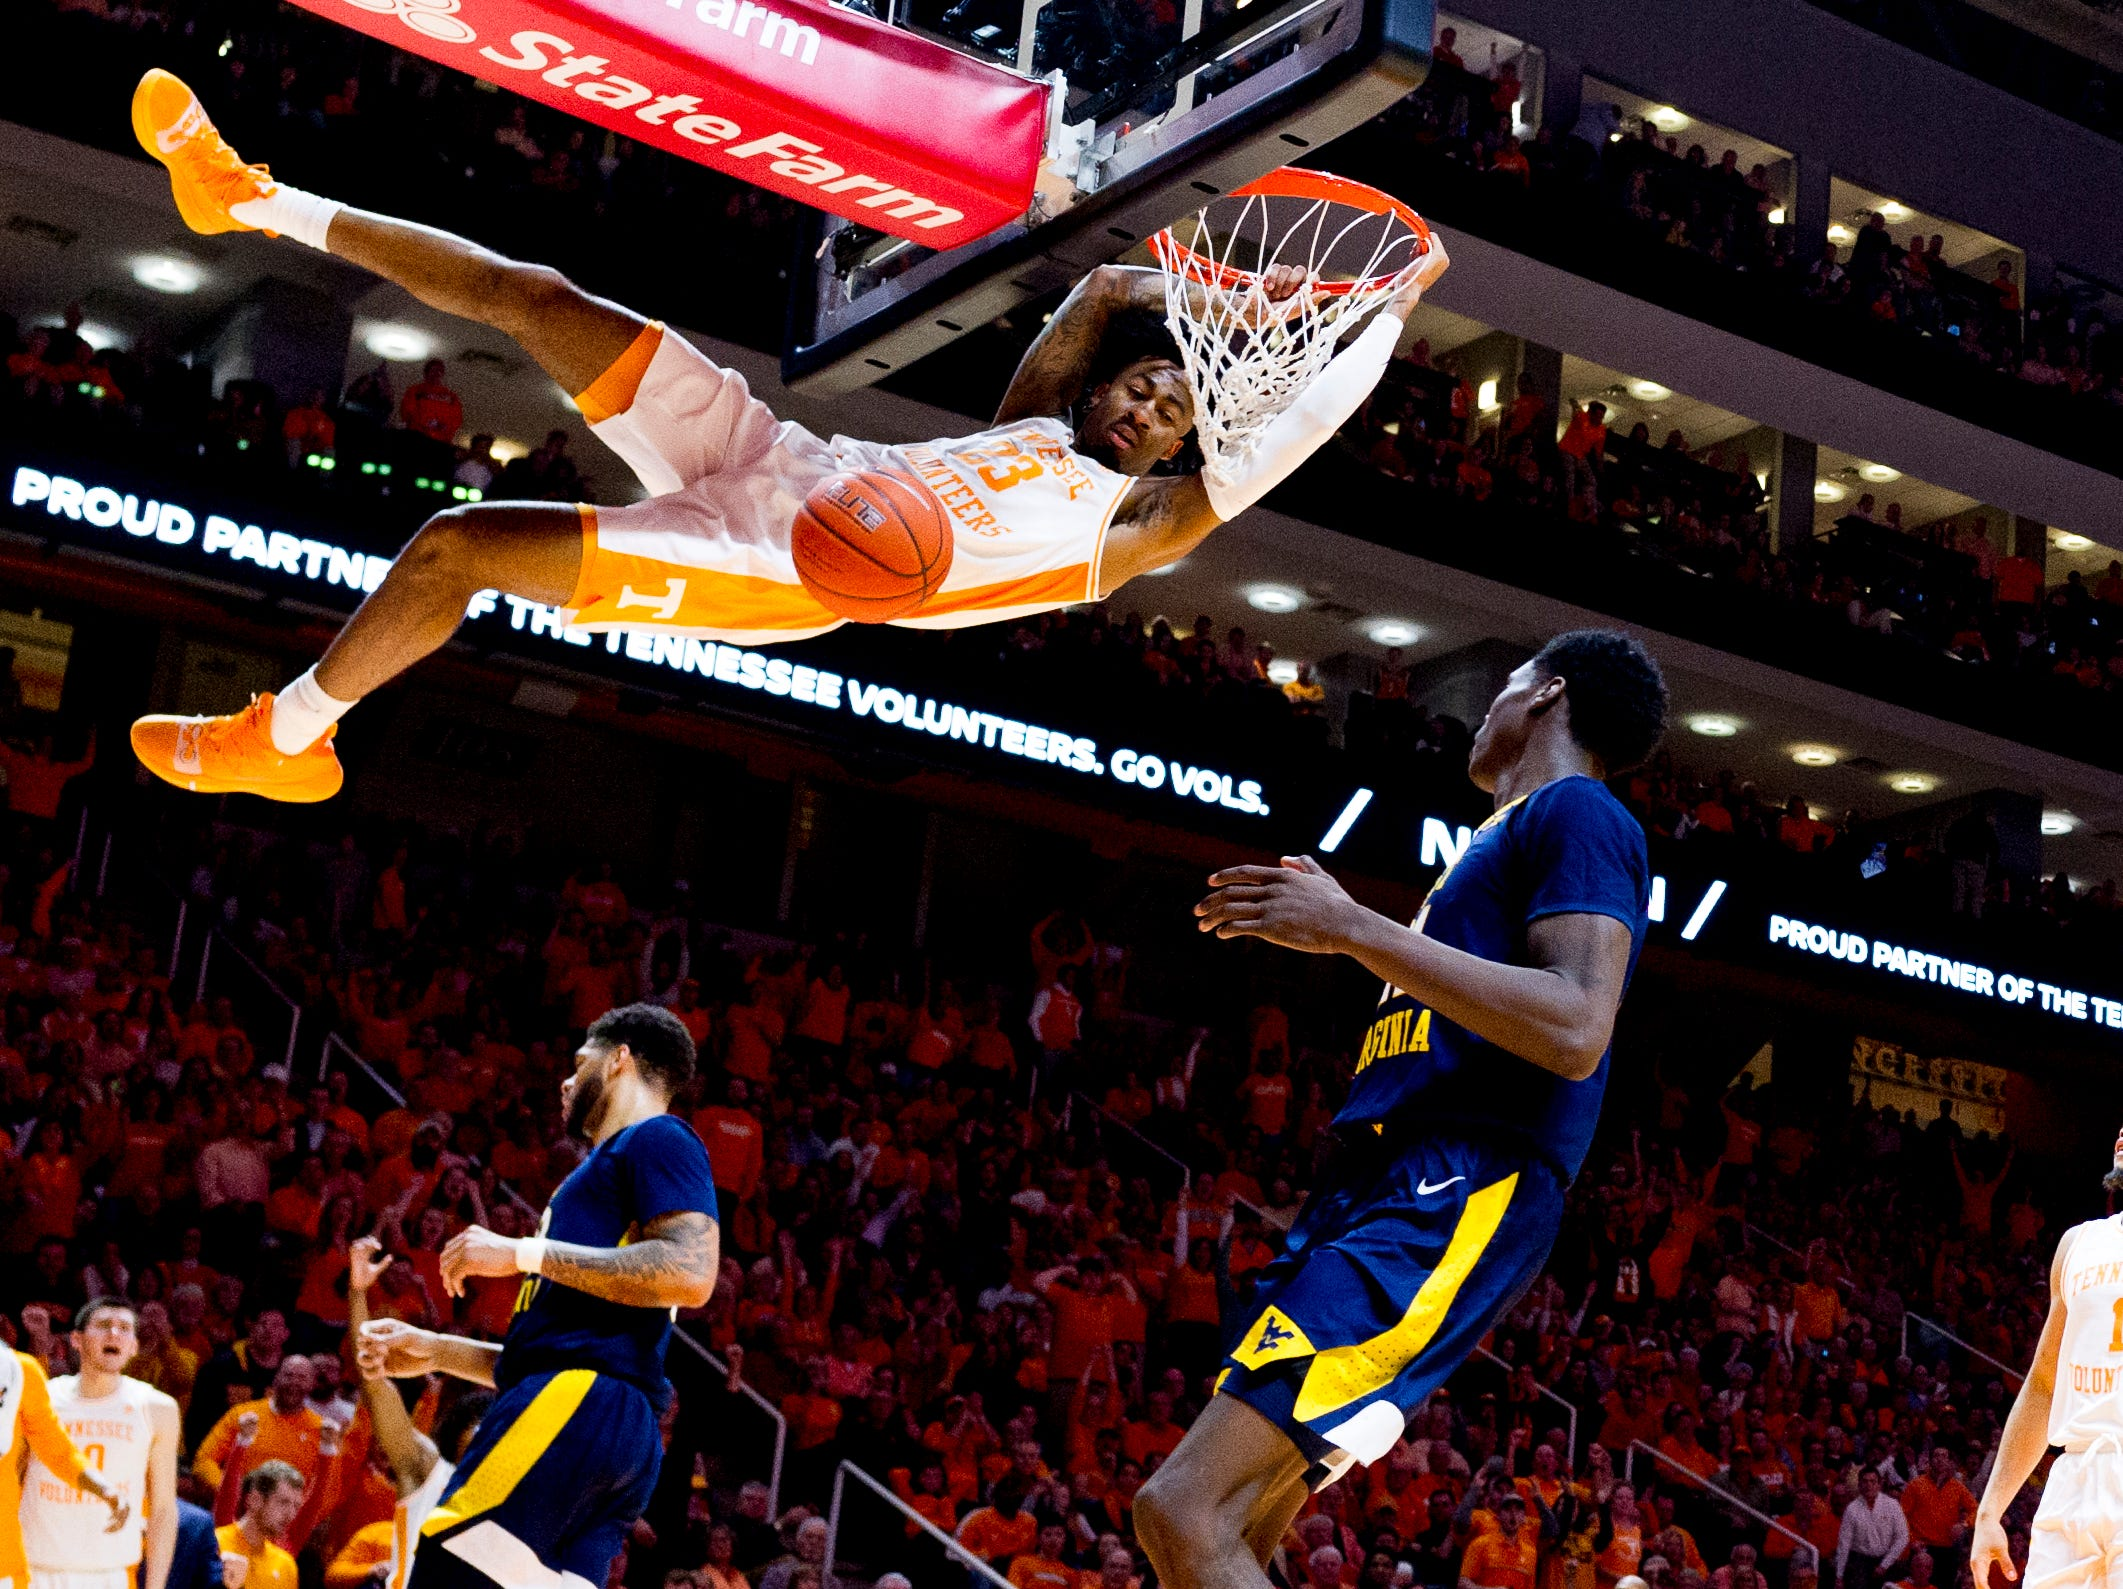 Tennessee guard Jordan Bowden (23) dunks during a SEC/Big 12 Challenge game between Tennessee and West Virginia at Thompson-Boling Arena in Knoxville, Tennessee on Saturday, January 26, 2019.